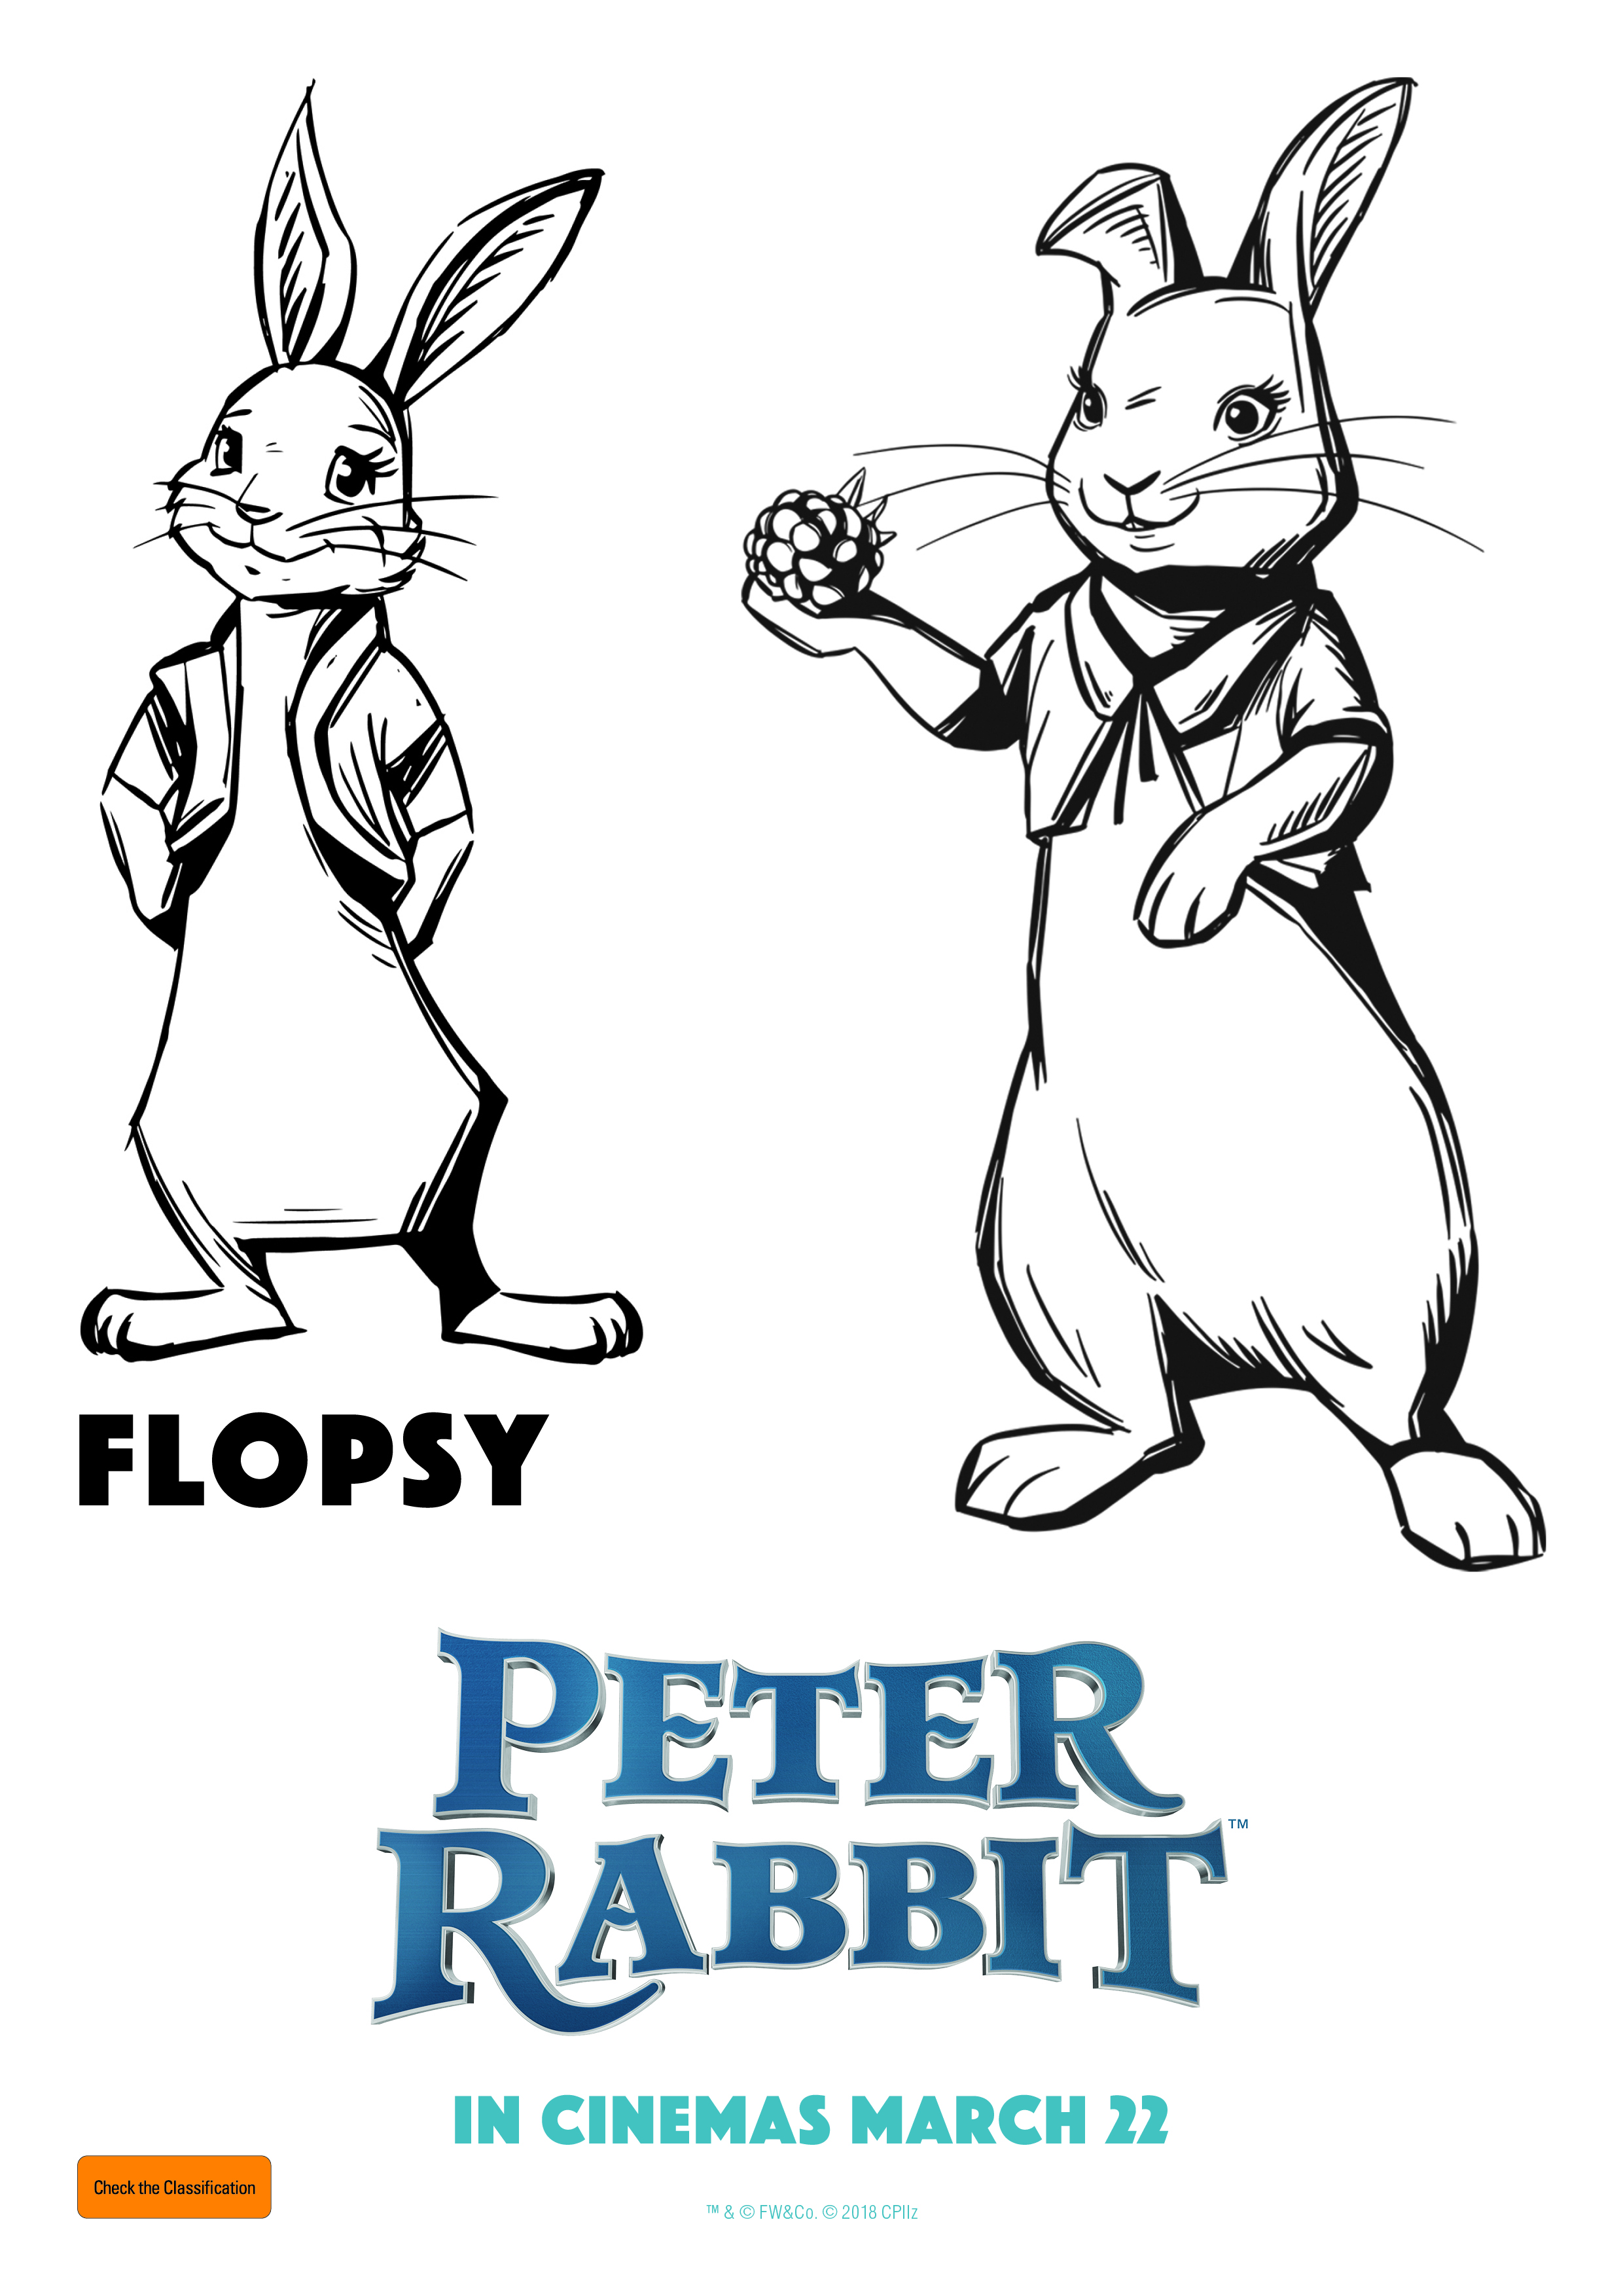 Copy of Flopsy - Peter Rabbit - Free Colouring In Sheet